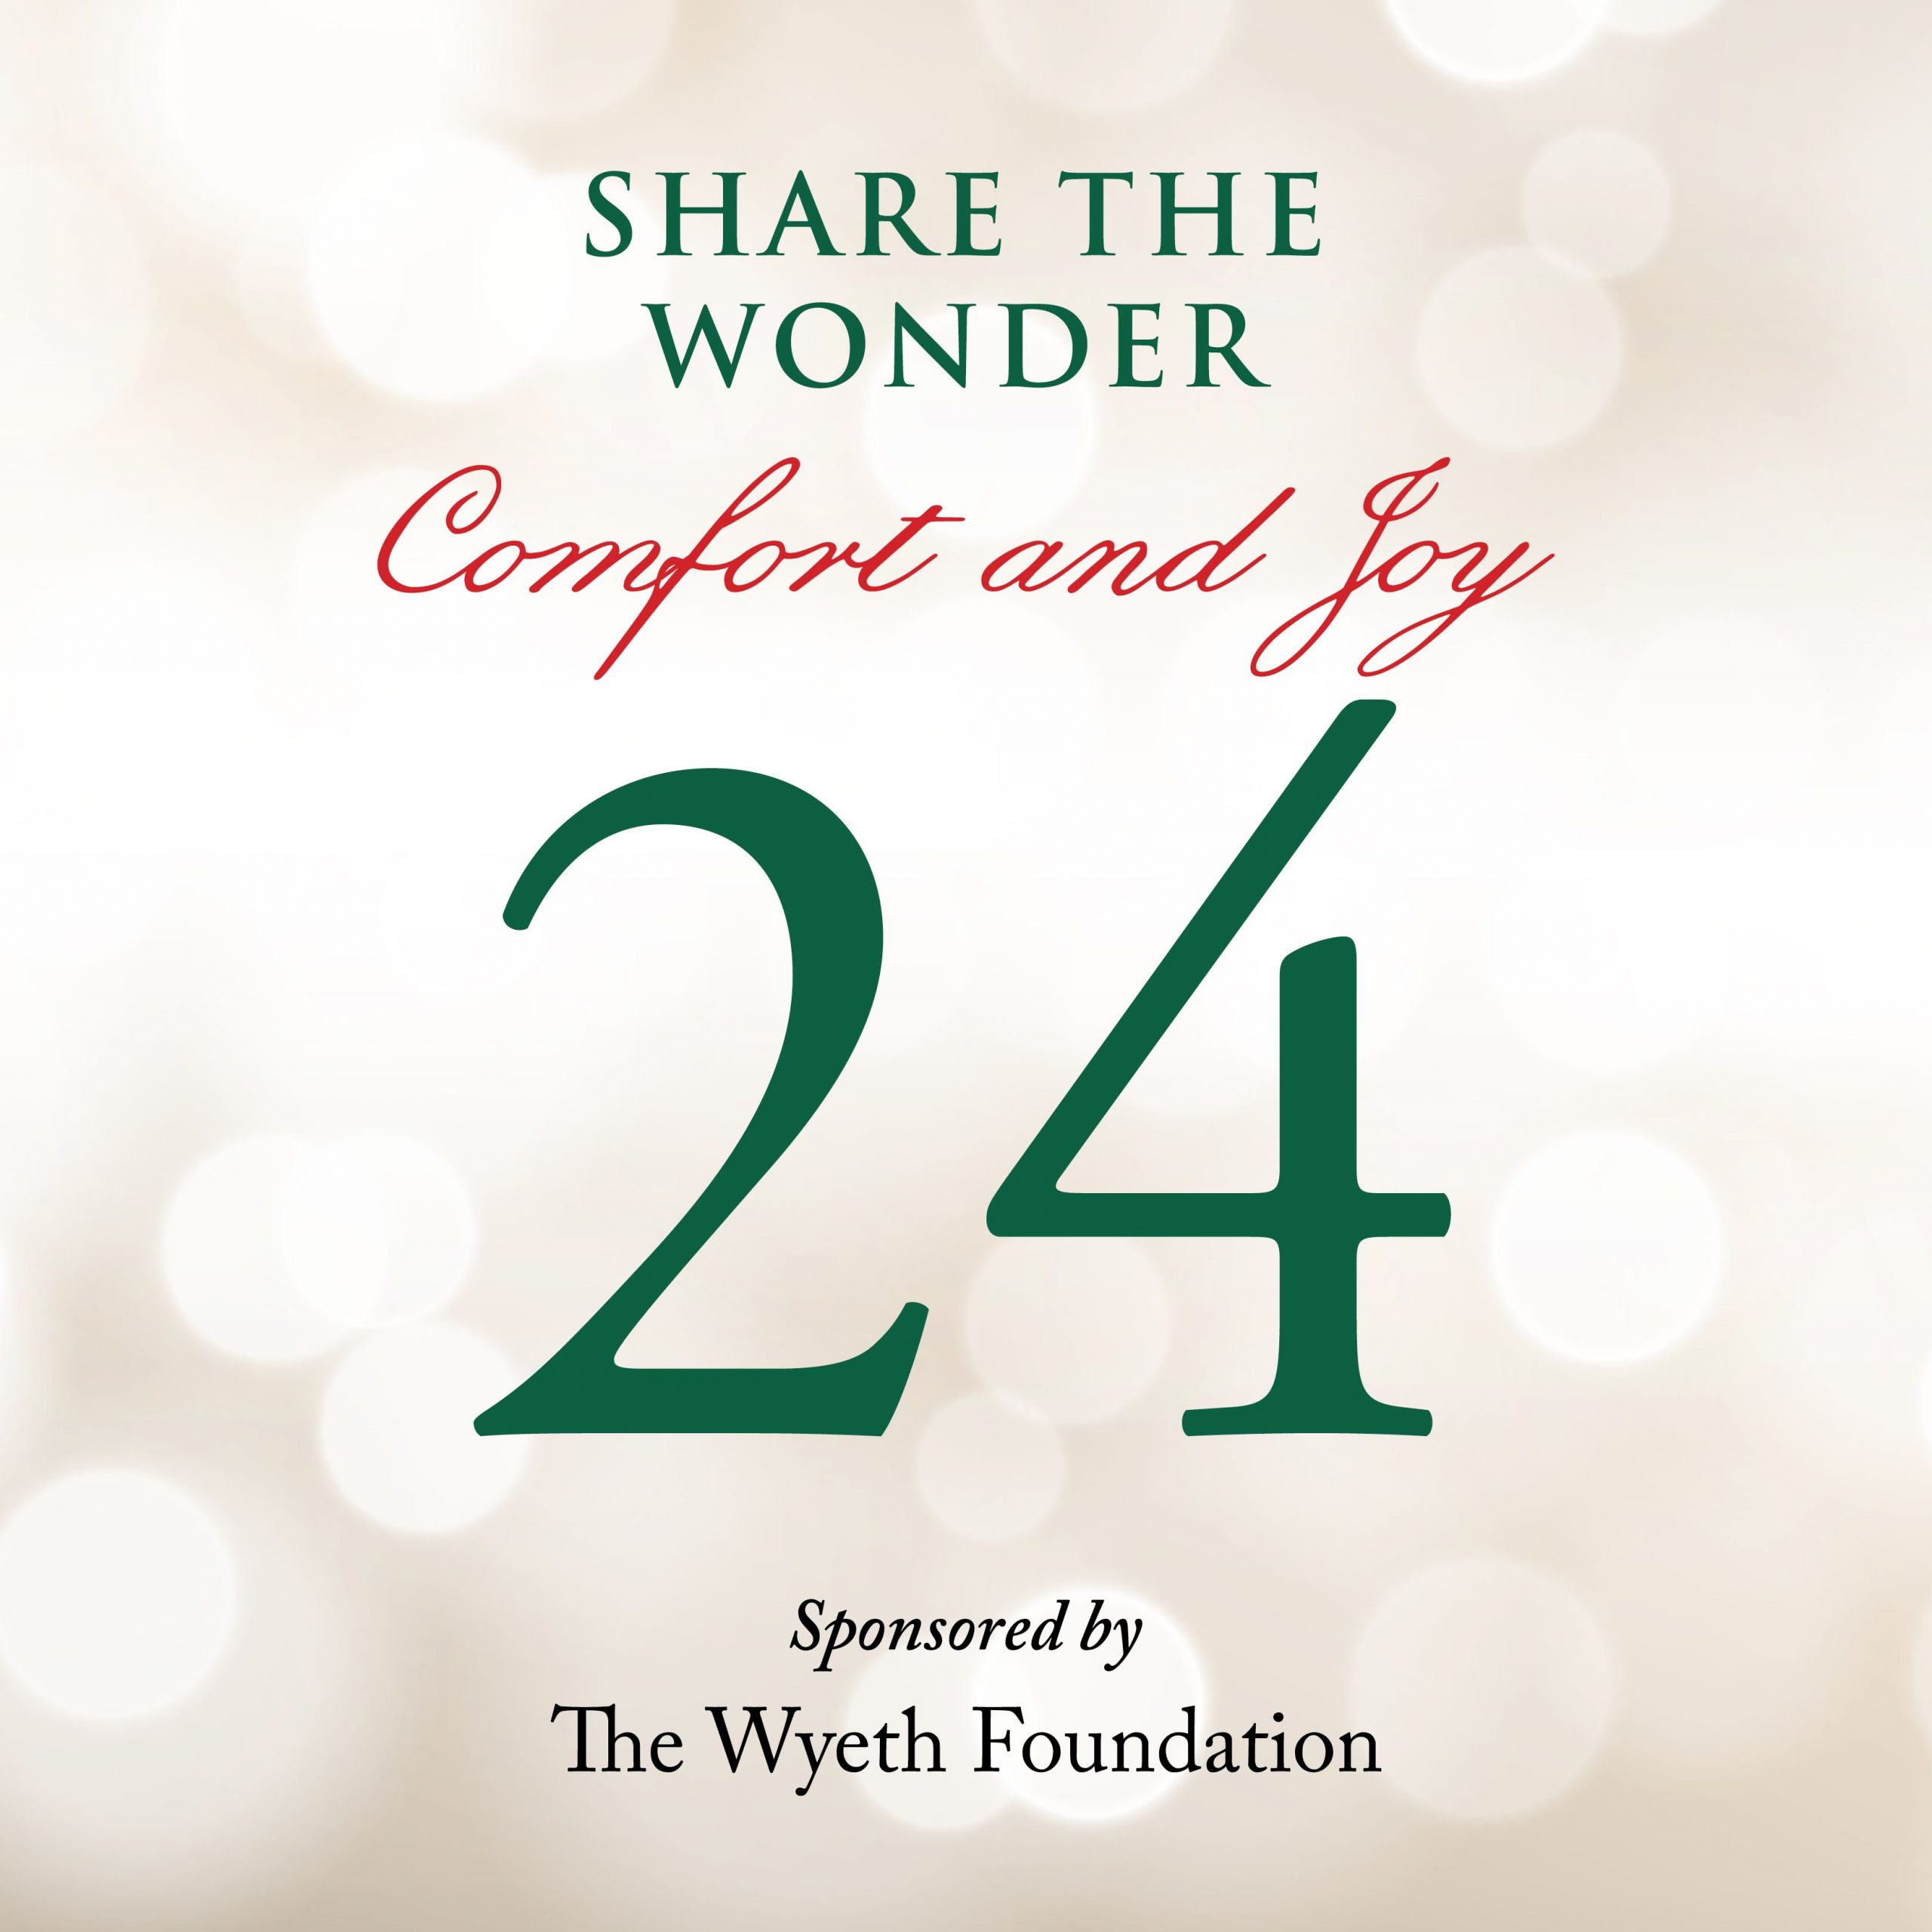 Day 24 of Share the Wonder: December 21